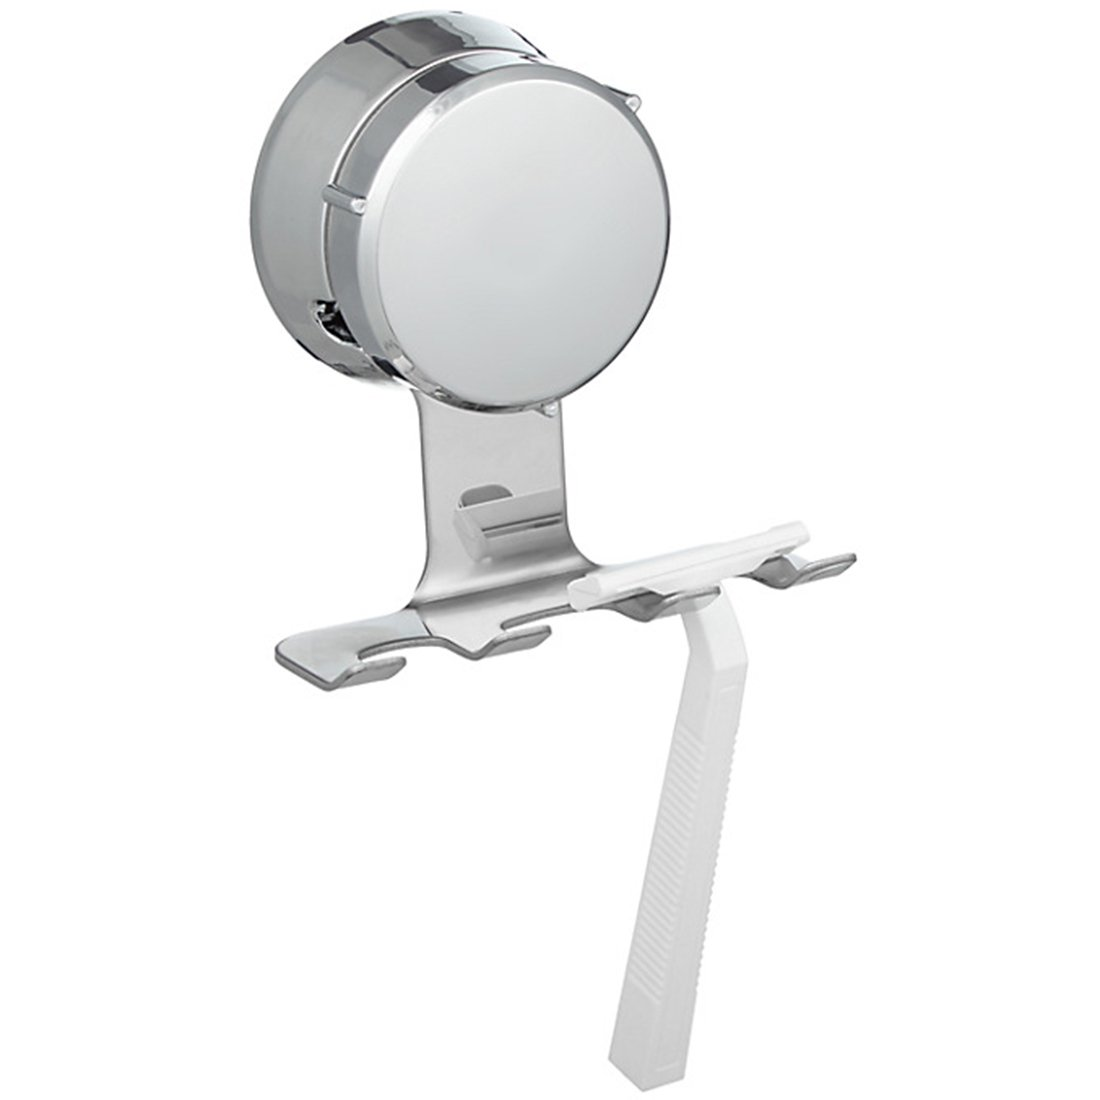 HOME SO Razor Holder with Suction Cup Hanger - Antibacterial ...